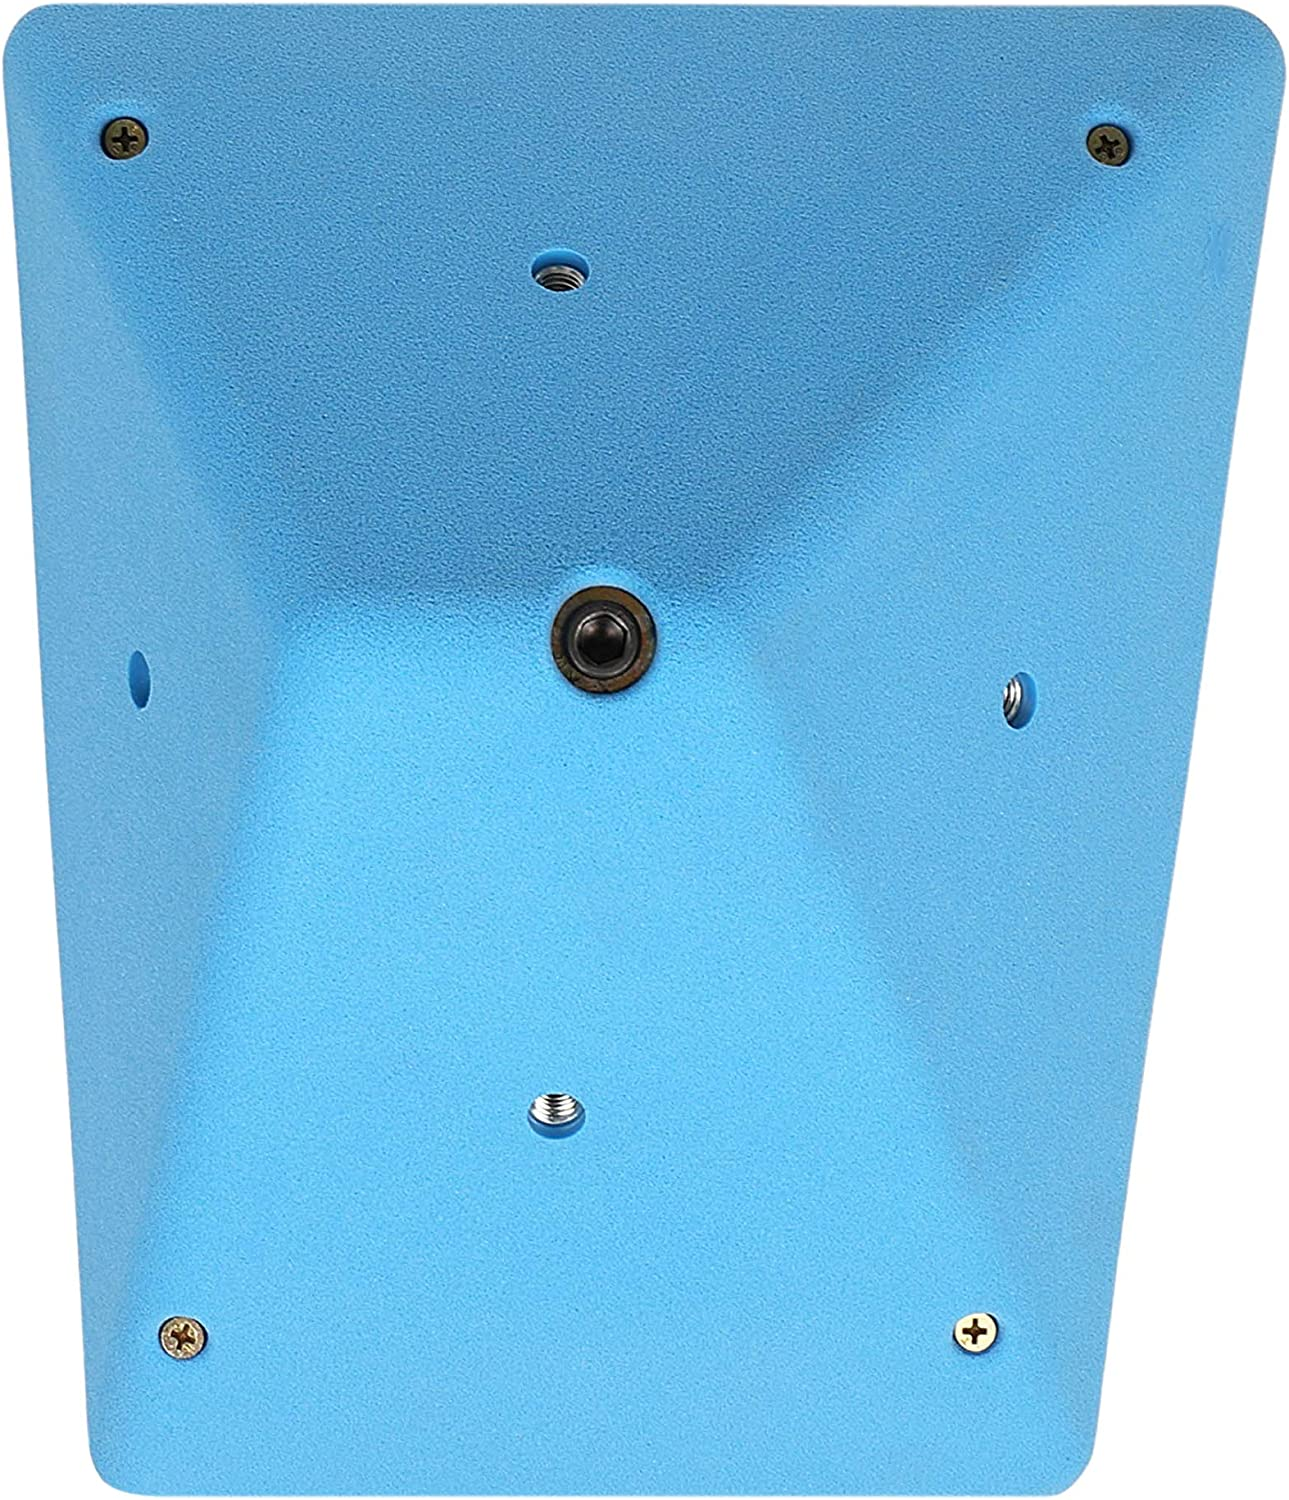 Atomik Rock Climbing Holds Bolt-On in Volume Multi-Angle Max 84% OFF Max 86% OFF 6 Blue